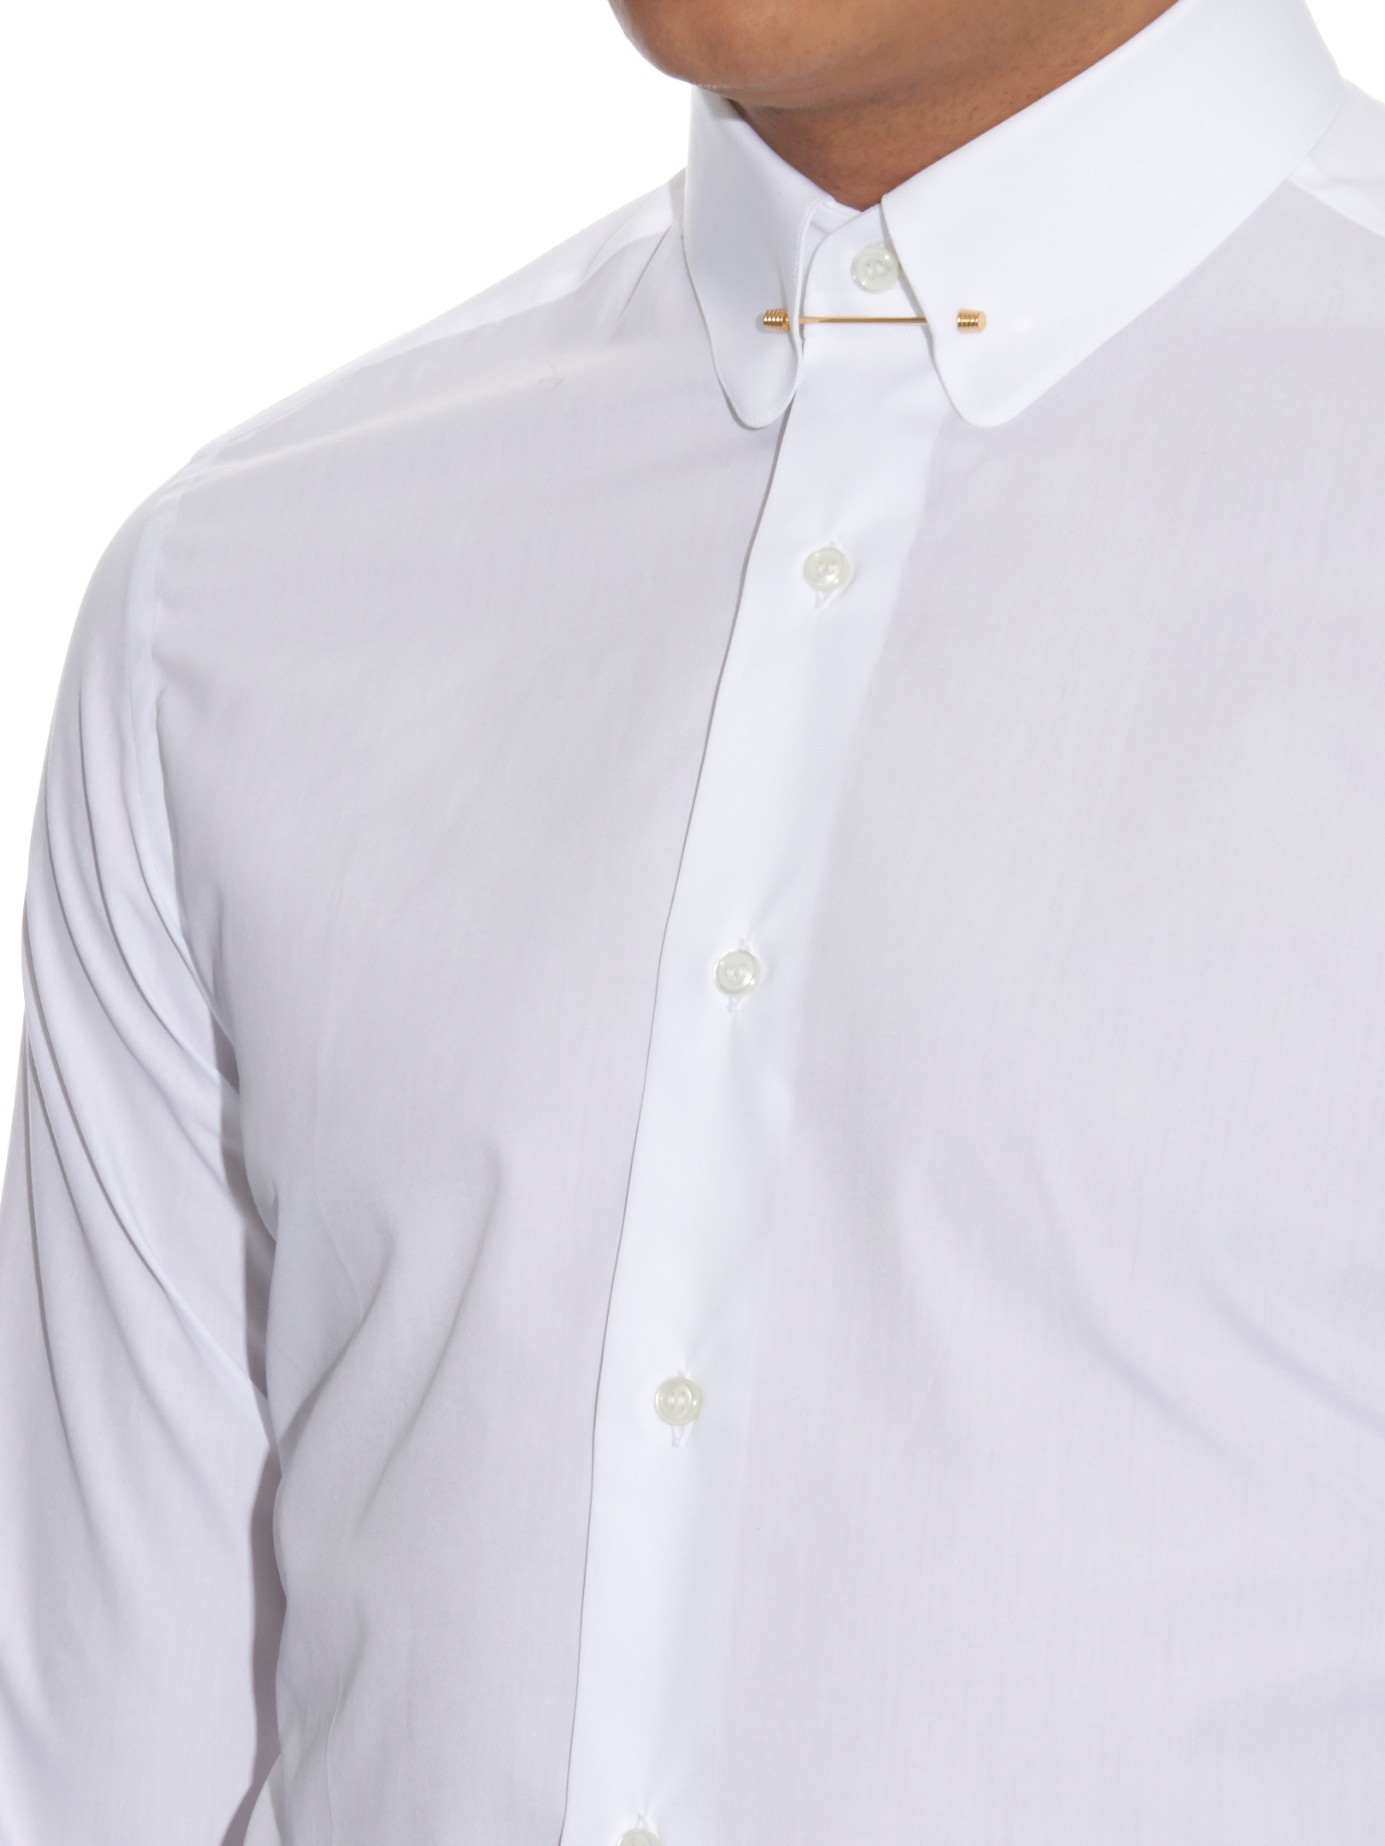 Lyst brioni pin collar slim fit cotton shirt in white for White shirt with collar pin